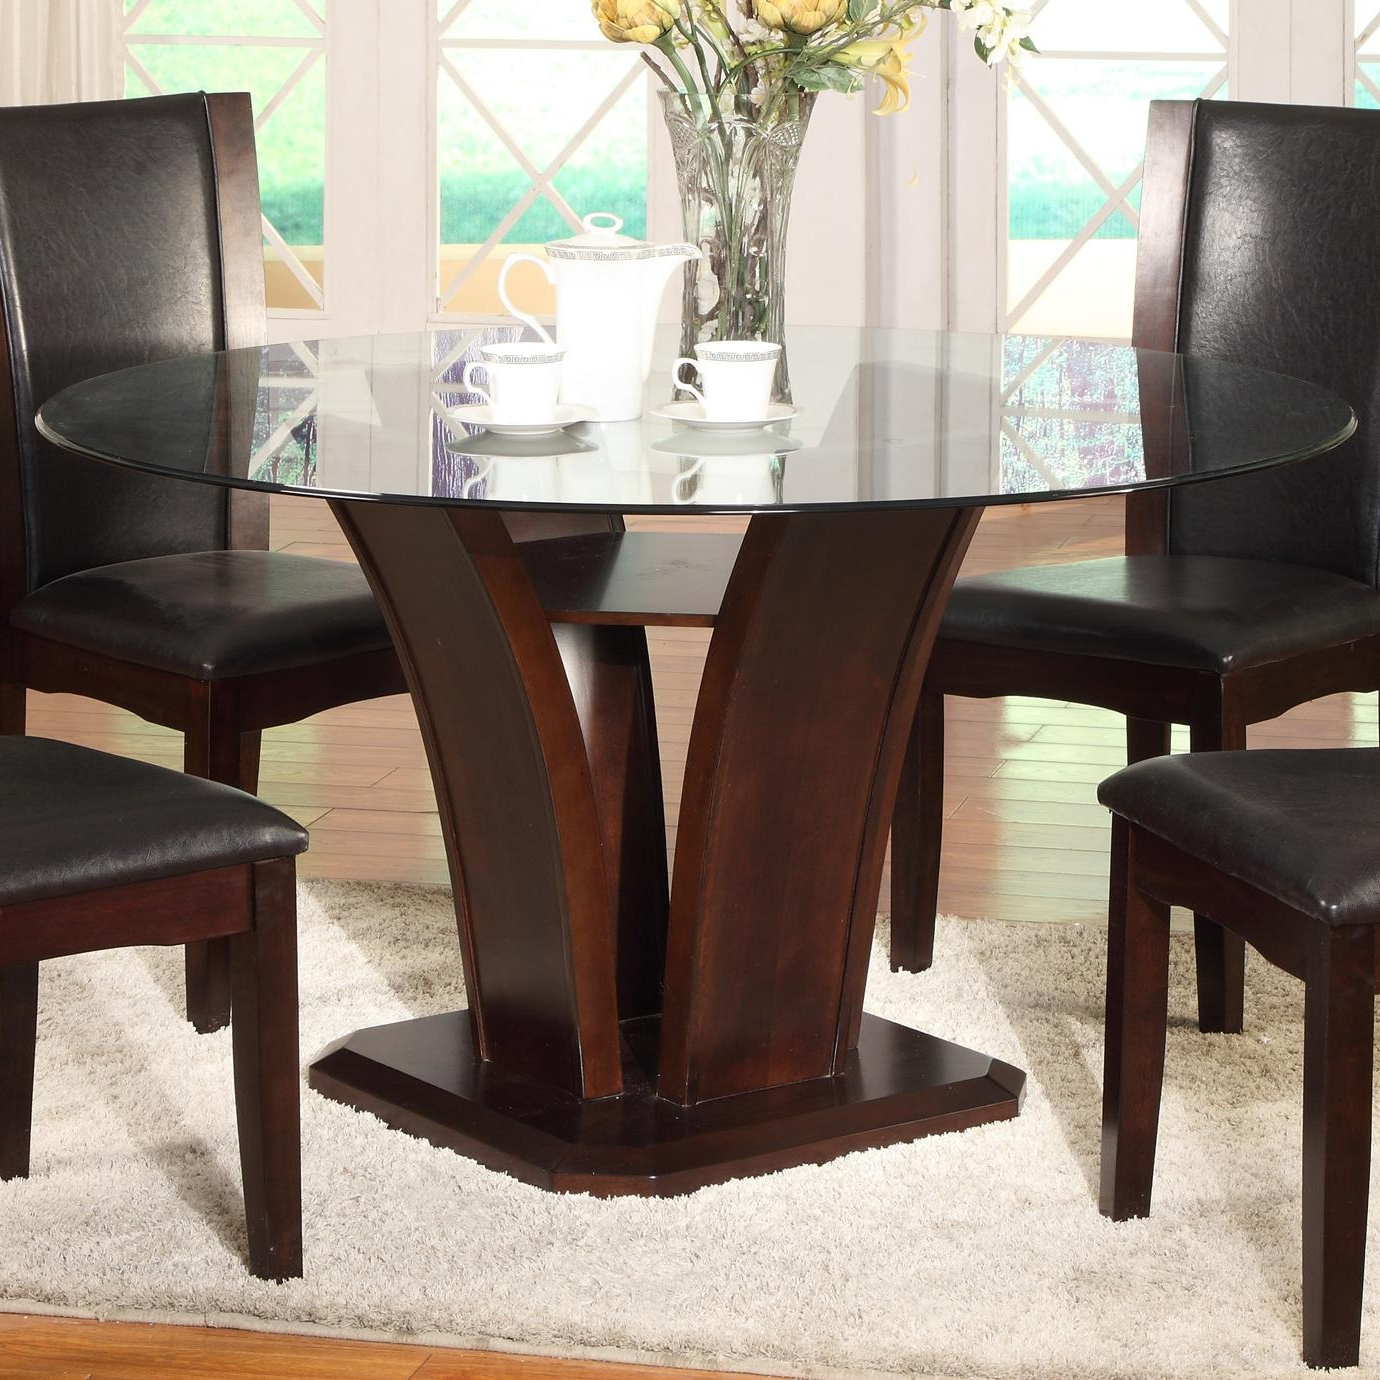 Widely Used Round Dining Table Crown Mark Camelia Espresso Glass Top For Round Glass Top Dining Tables (View 6 of 25)